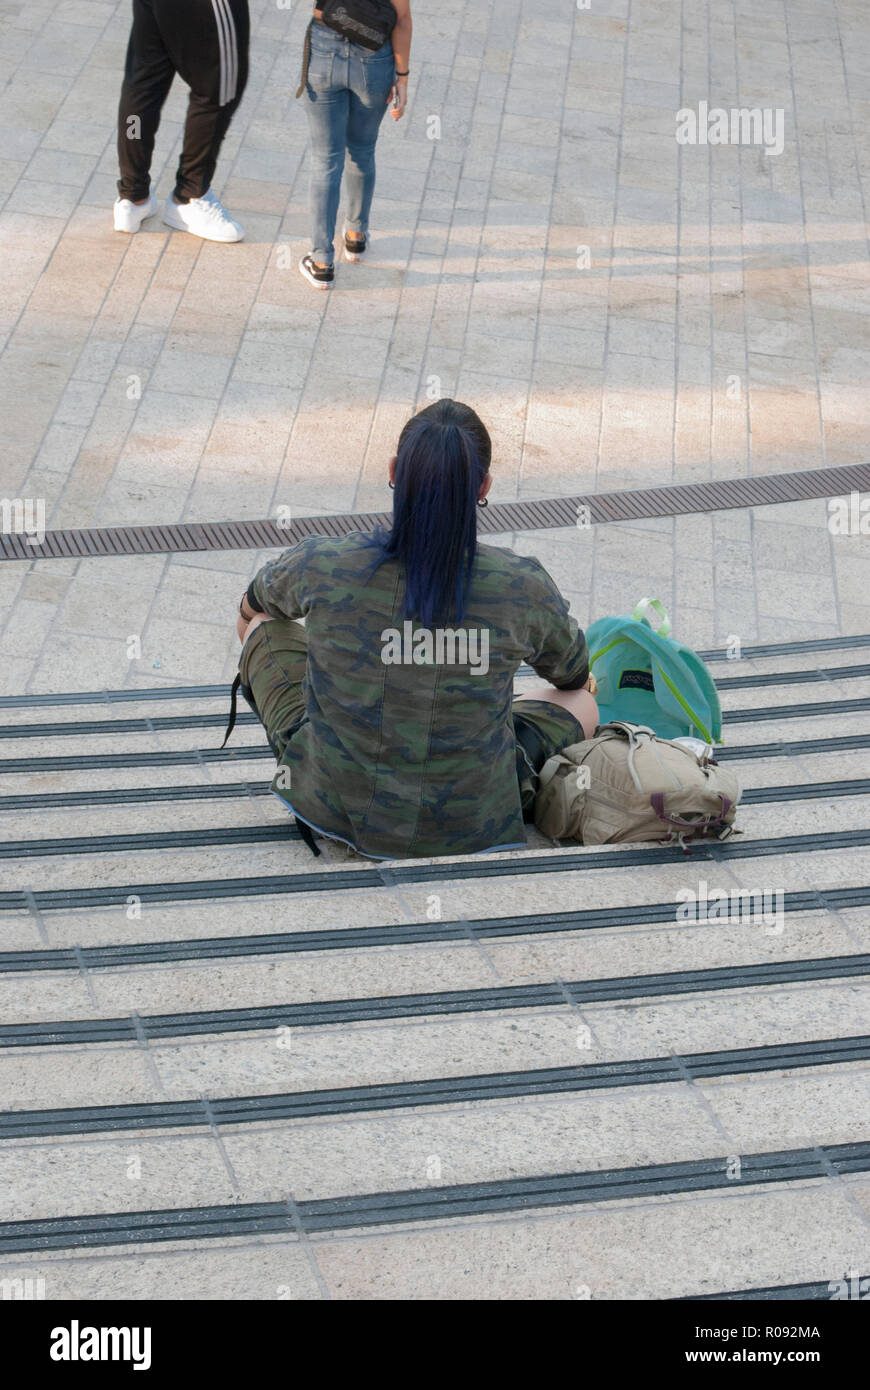 Young girl wearing camouflage sitting on steps searching web, listening to music watching at another girl and a boy, Love triangle choice concept. - Stock Image